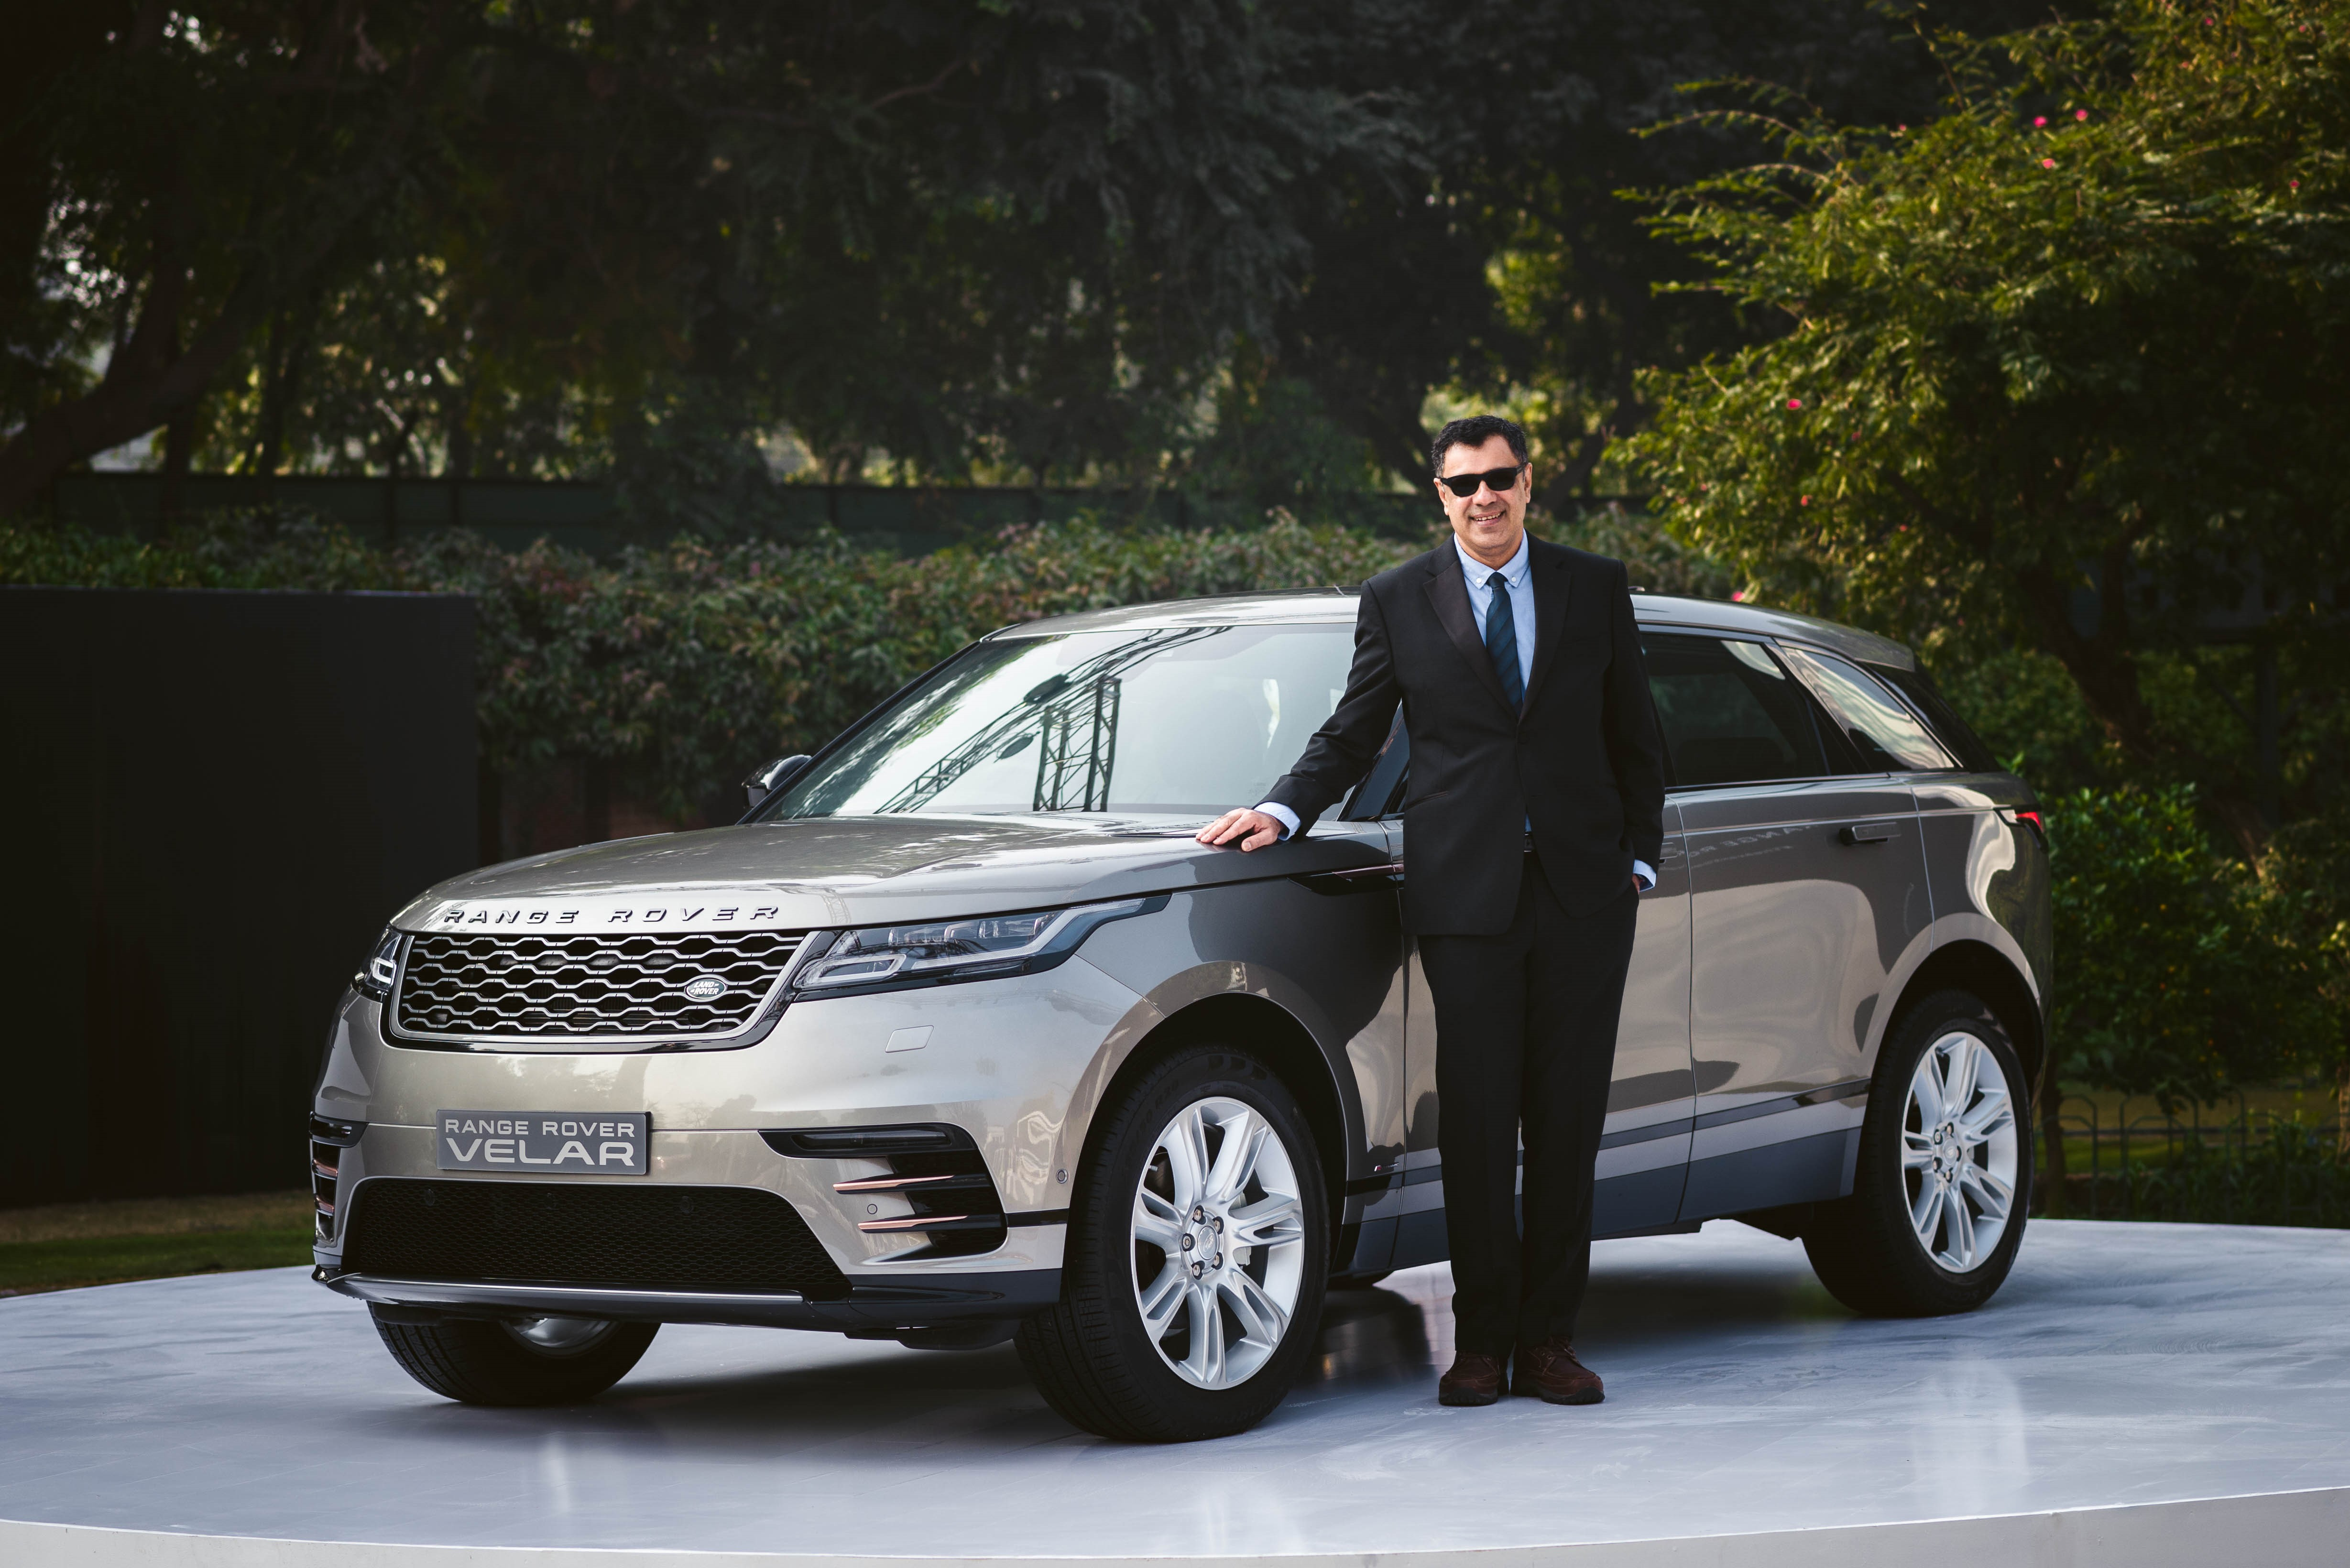 Photo of The sinister new Land Rover Range Rover Velar has been launched in India at Rs. 78.83 lakh